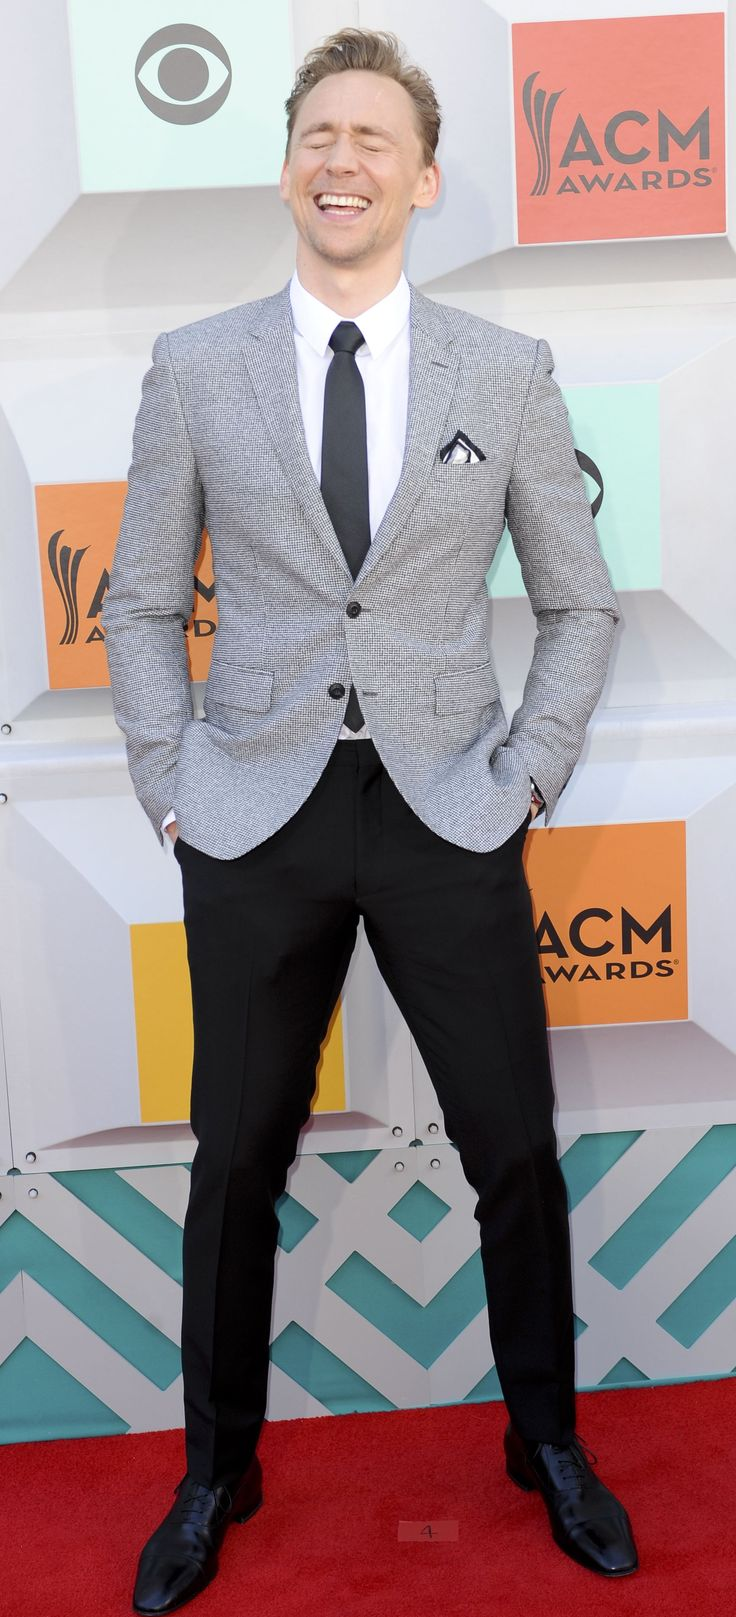 Tom Hiddleston @ the 51st Academy of Country Music Awards at MGM Grand Garden Arena in Las Vegas, Nevada 3.4.2016 From http://tw.weibo.com/torilla/3960488650267852